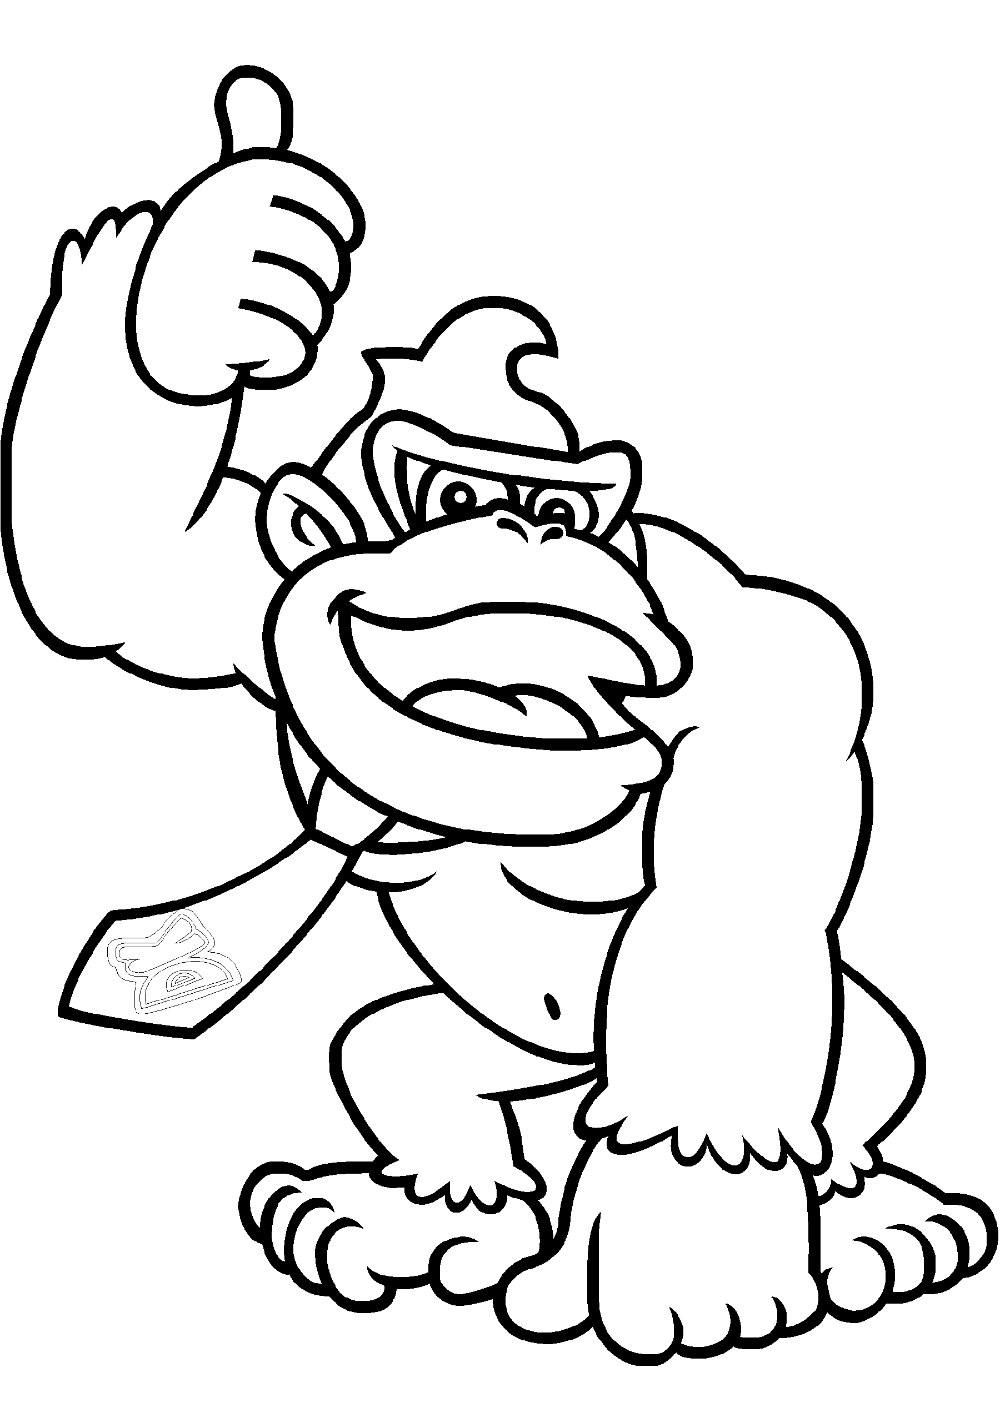 Donkey Kong Coloring Pages Educative Printable Coloring Pages Drawings Free Online Coloring